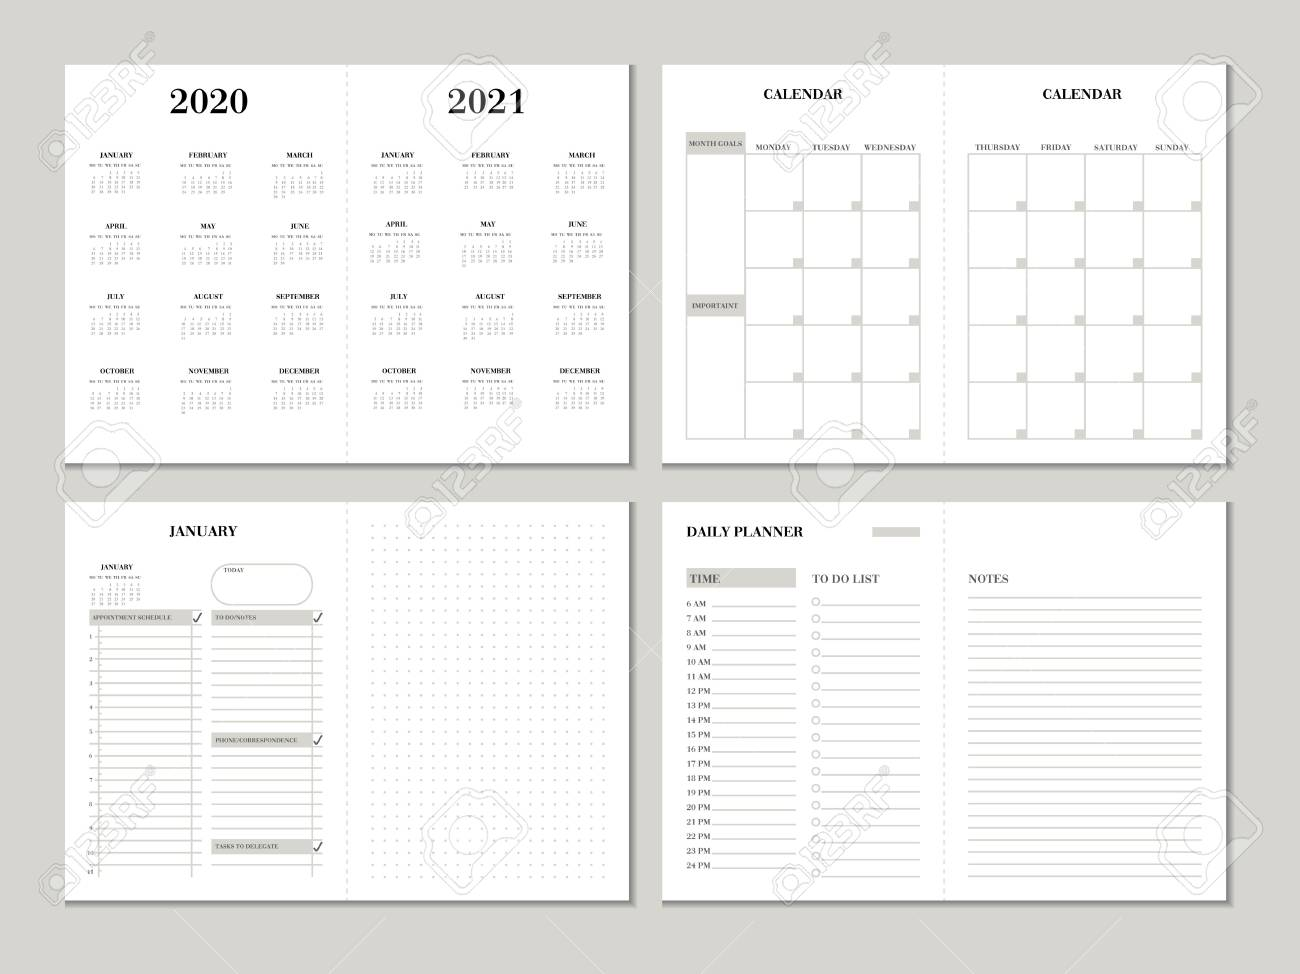 Printable Weekly Planner 2020.Planner Design Template For 2020 2021 Year Weekly And Monthly